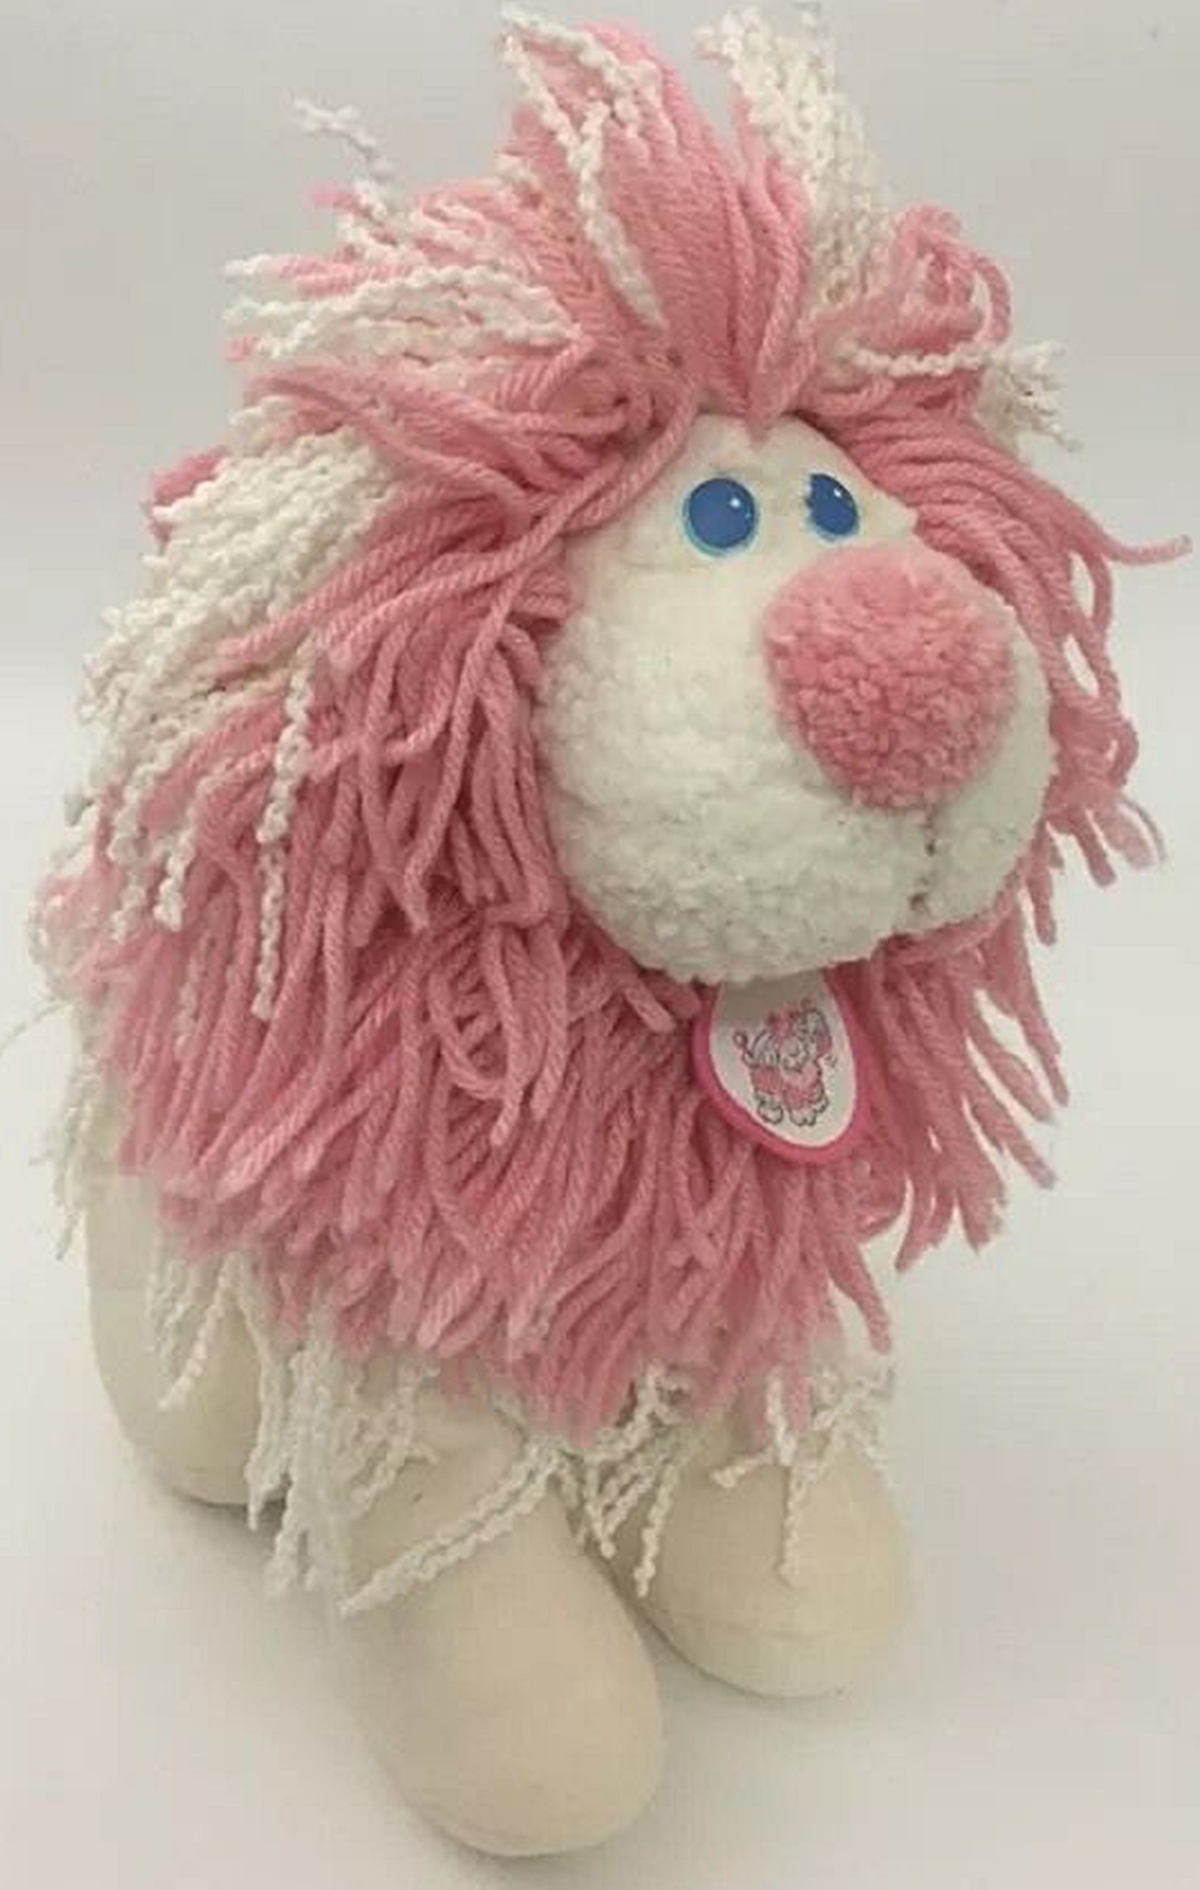 2 49 QUIZ: How Many Of These 15 Cuddly Toys Did YOU Own As A Child?